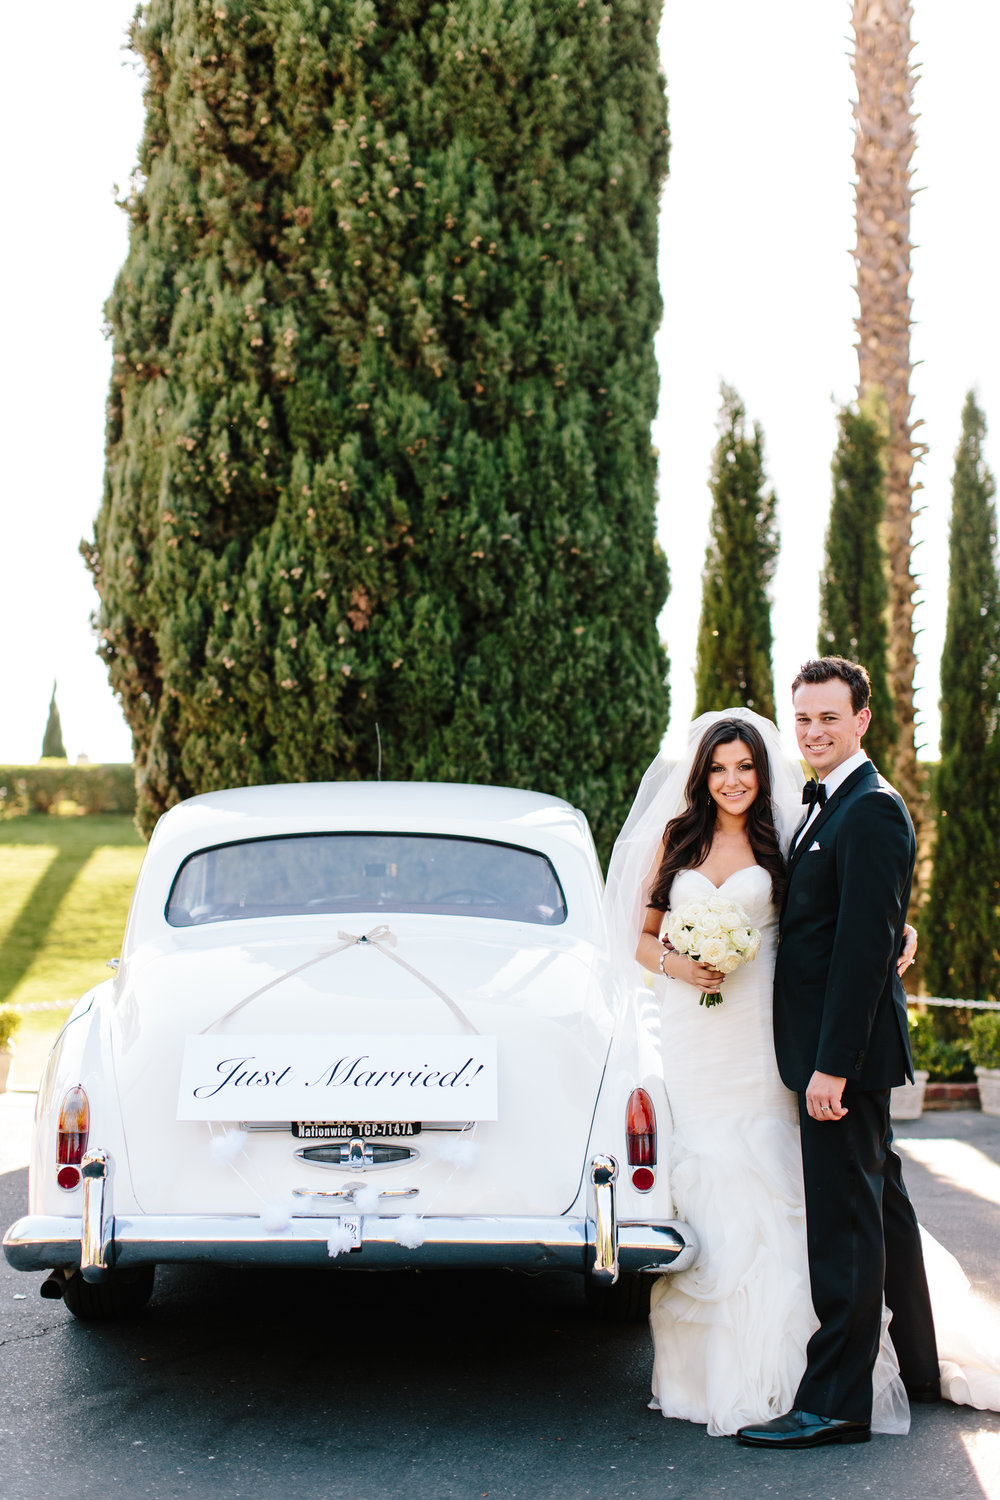 Natassia & Jared | Grand Island Mansion | Walnut Grove, CA   Event Design & Planning, Signage